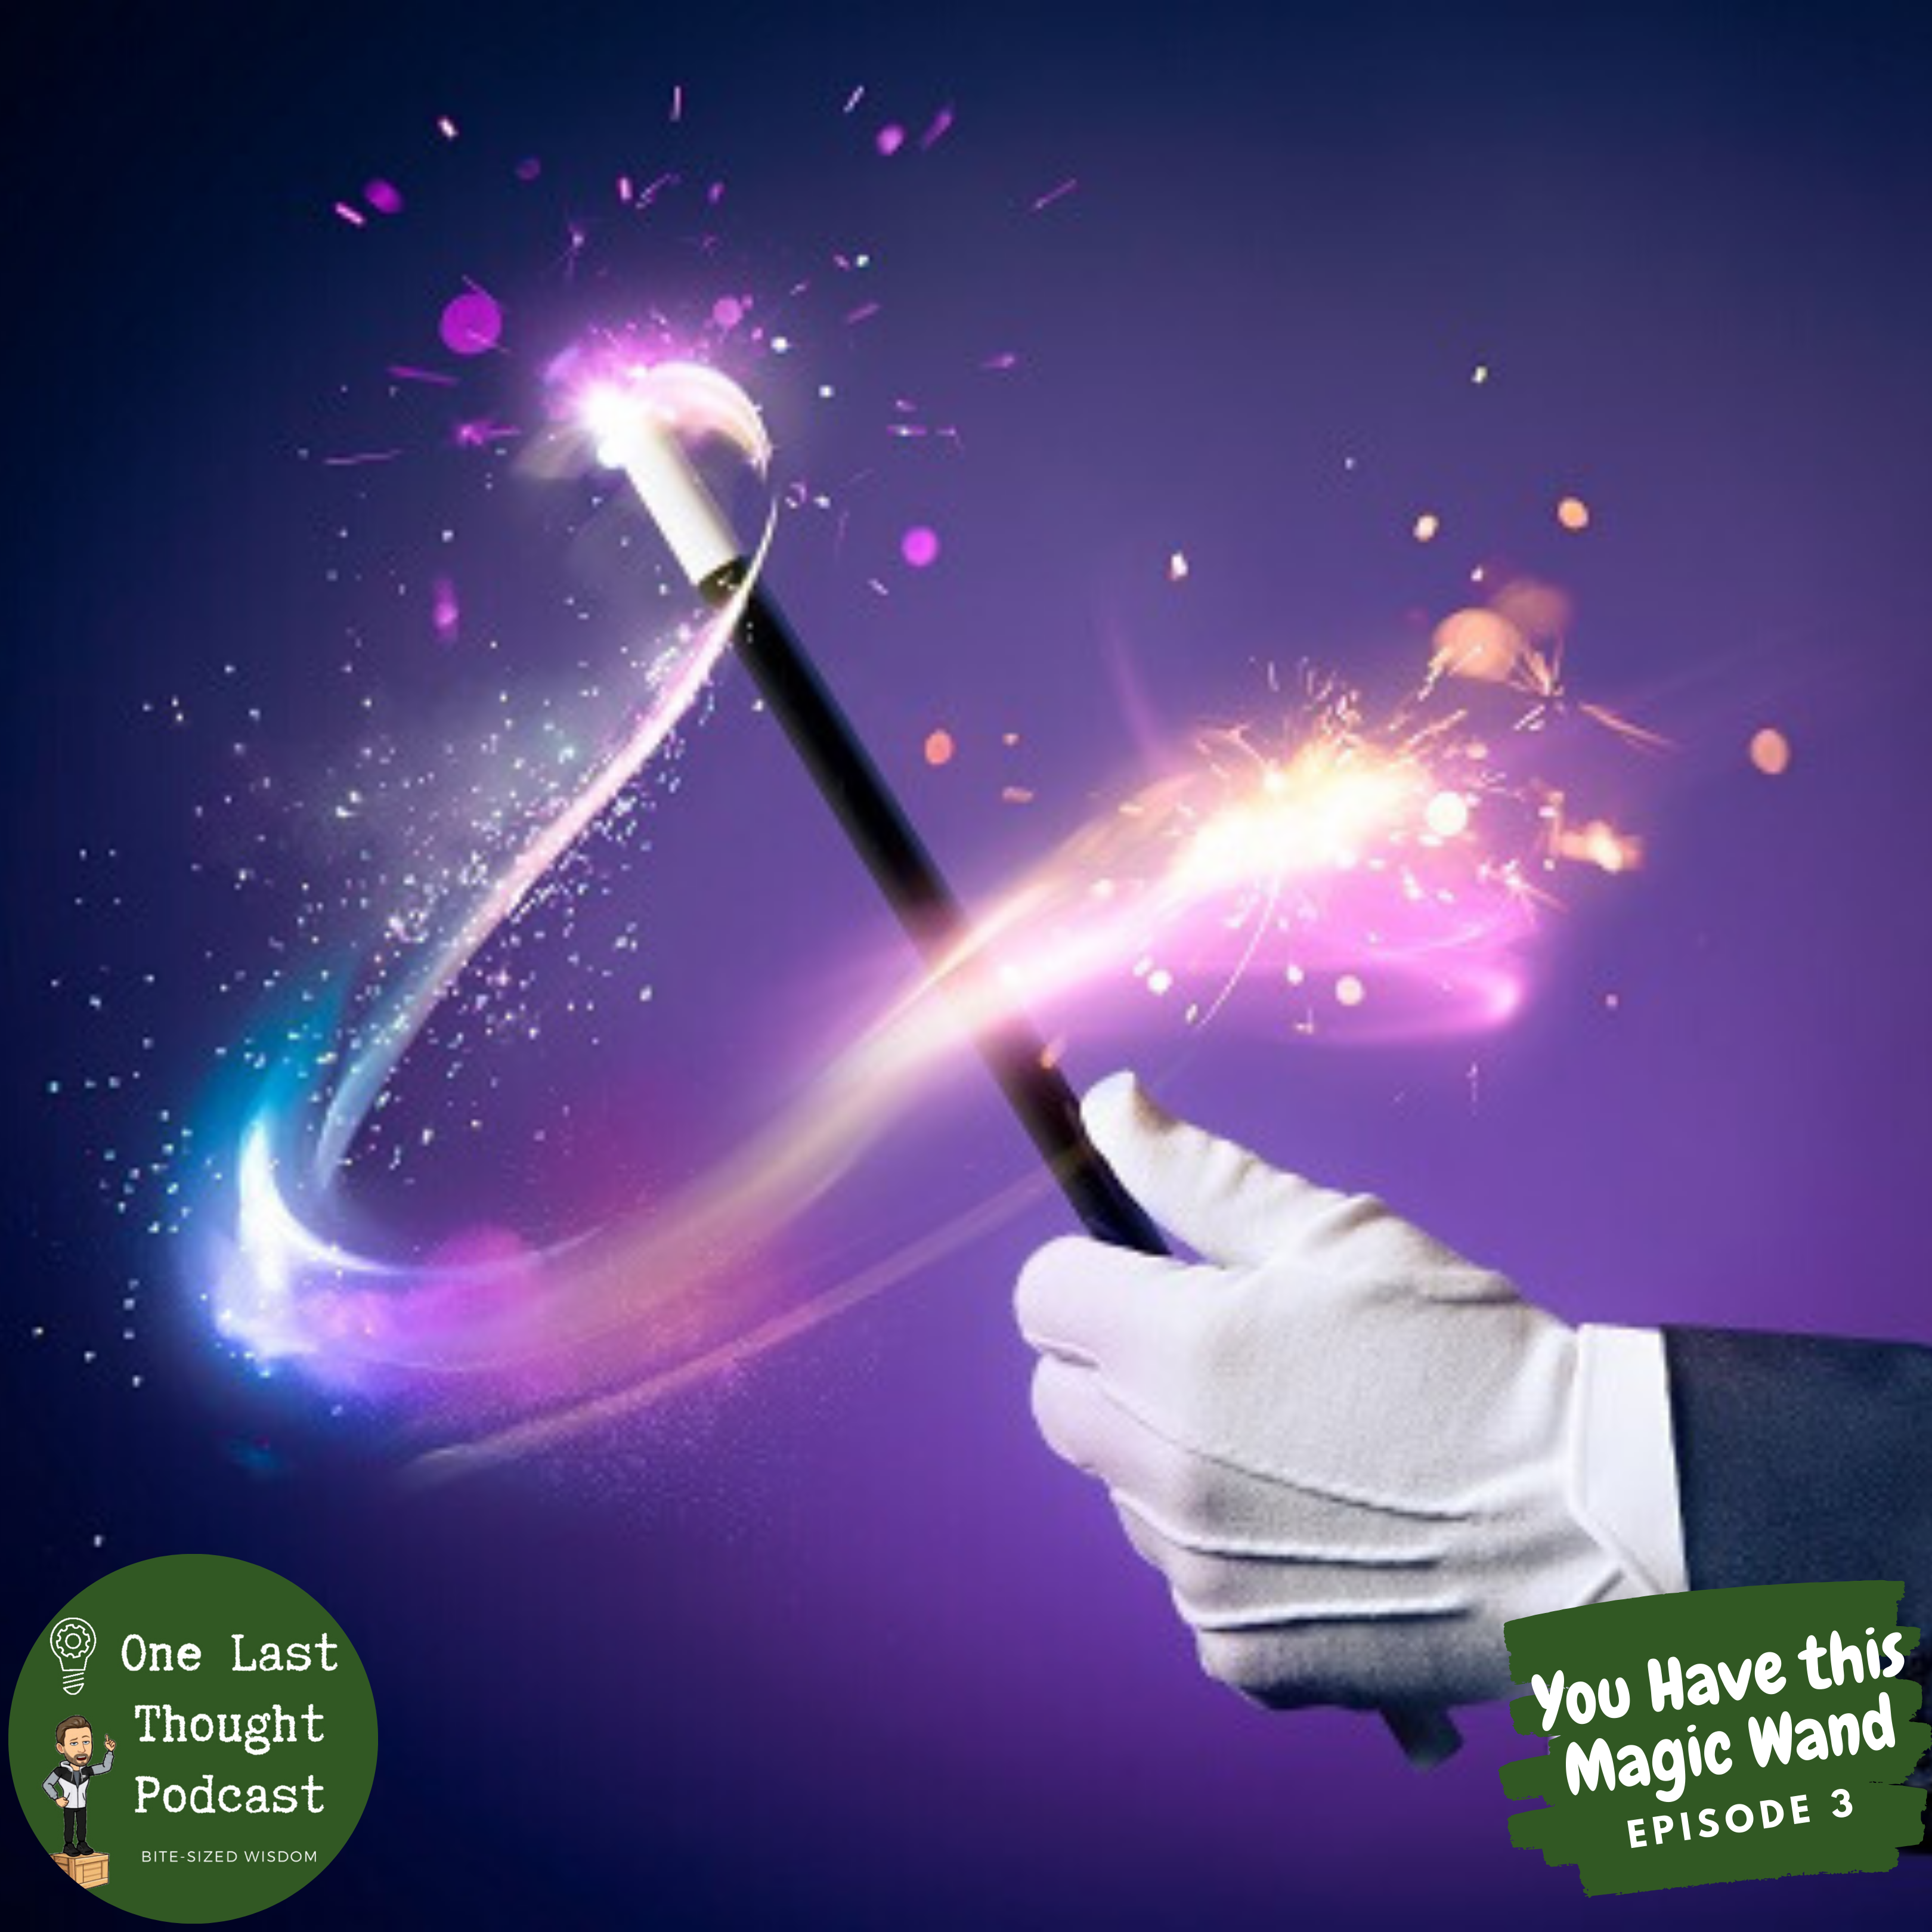 You have this Magic Wand...